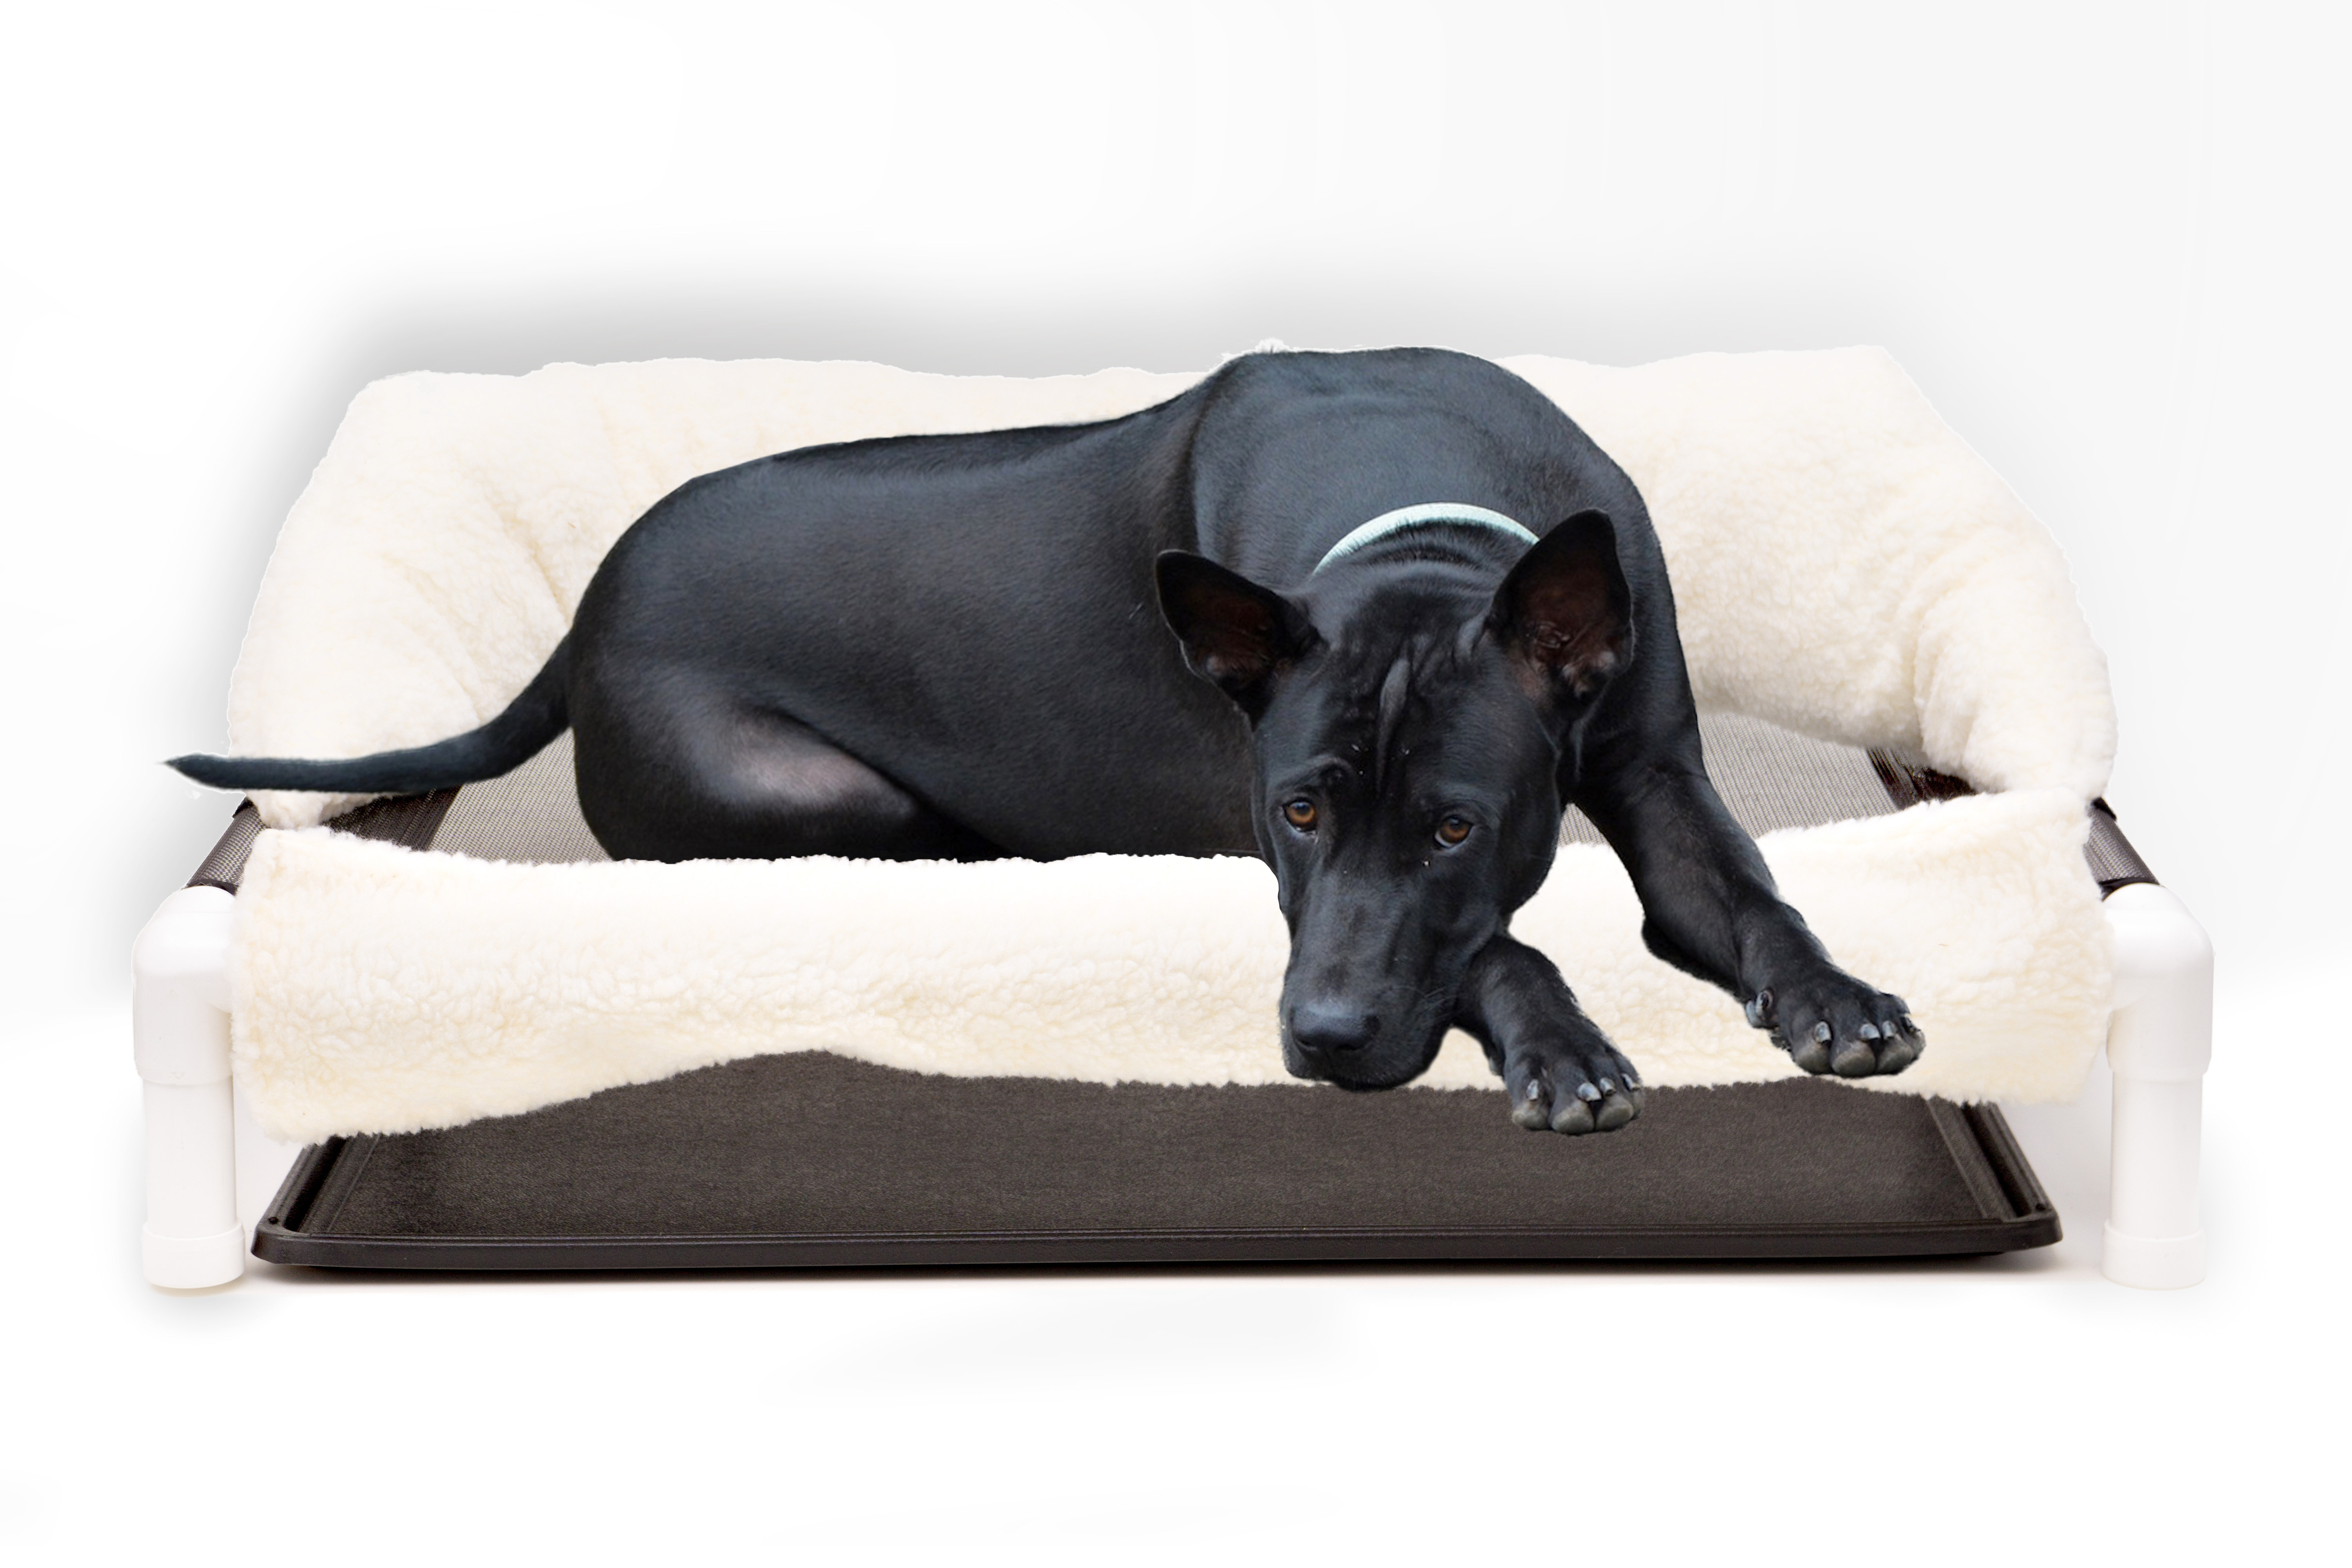 Elevated Bed for Incontinent Dogs and other Pets